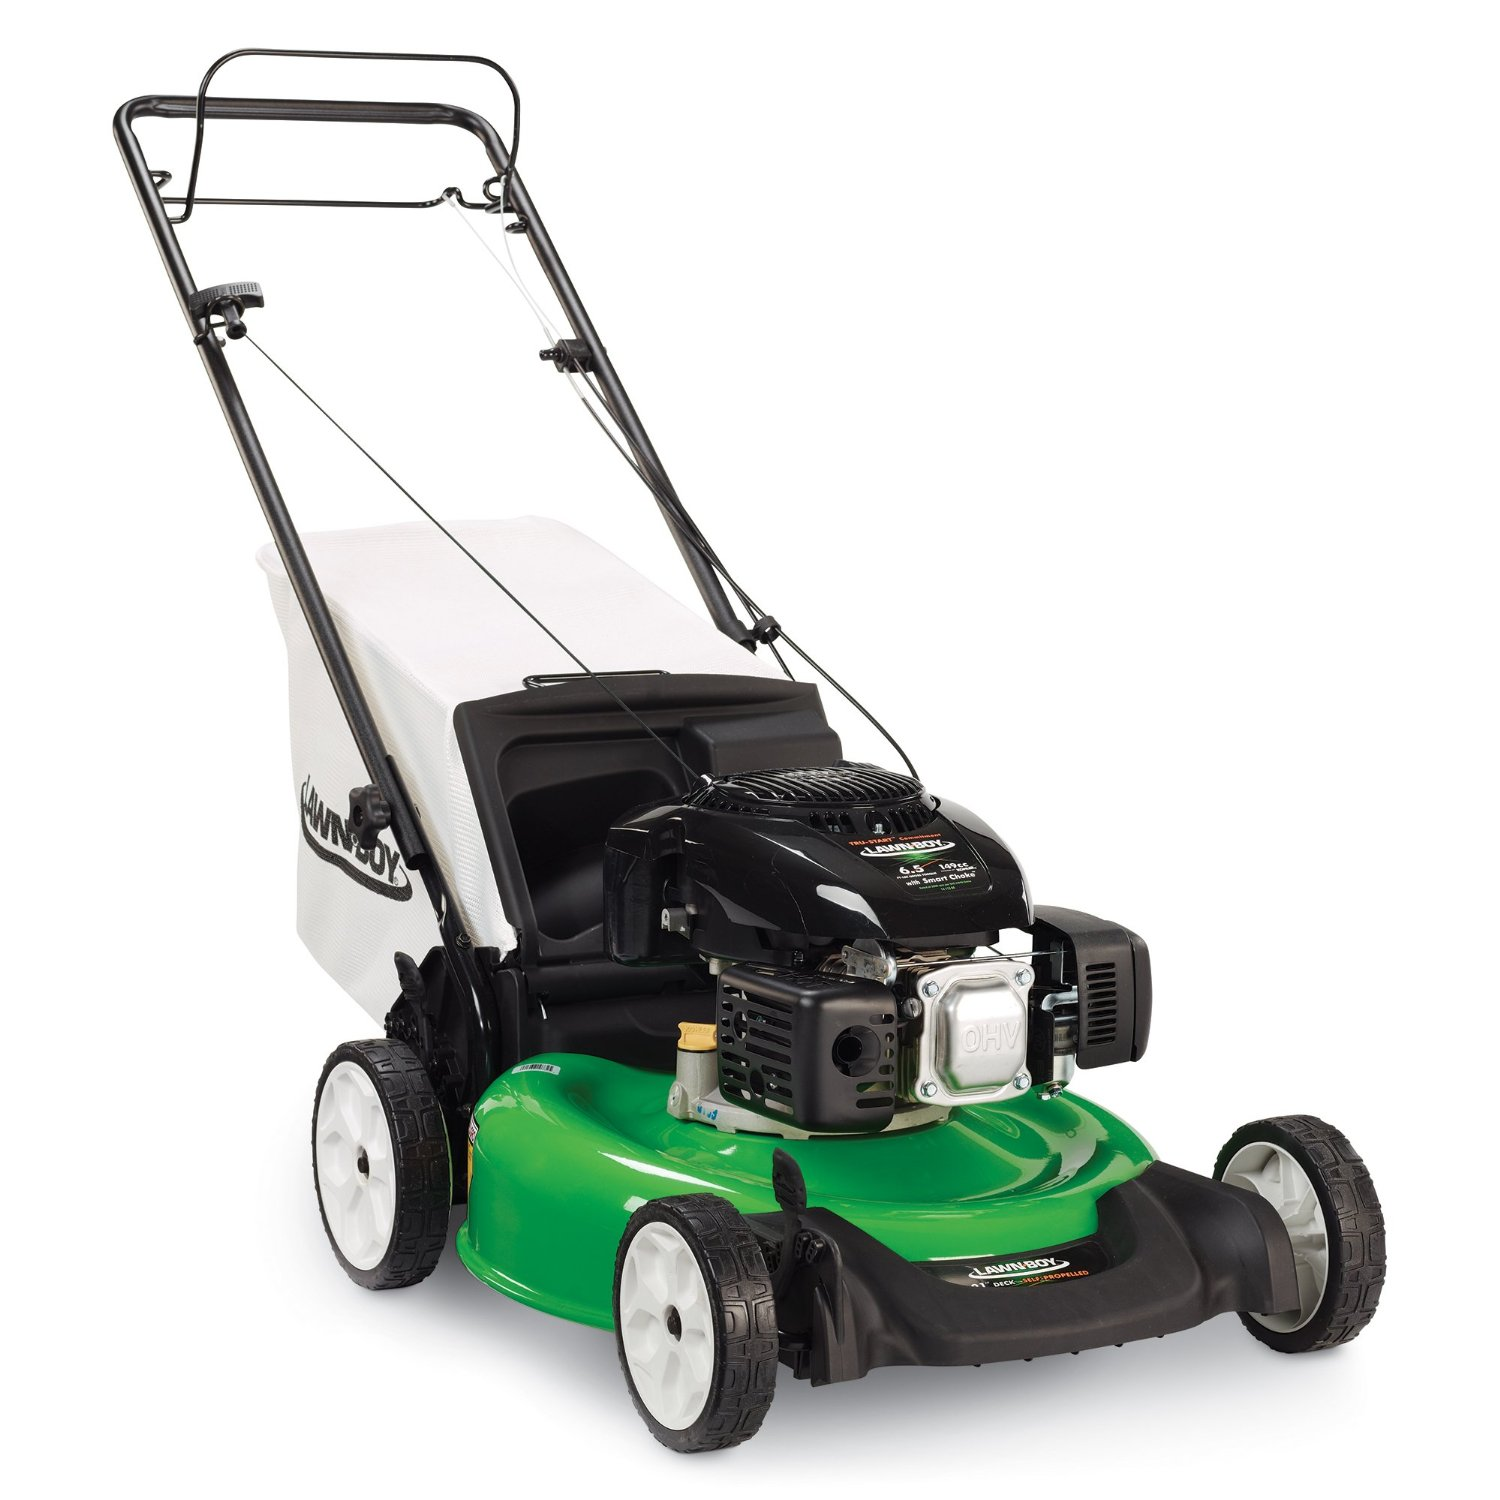 LAWN-BOY 10732 SELF PROPELLED LAWN MOWER REVIEWS 2018